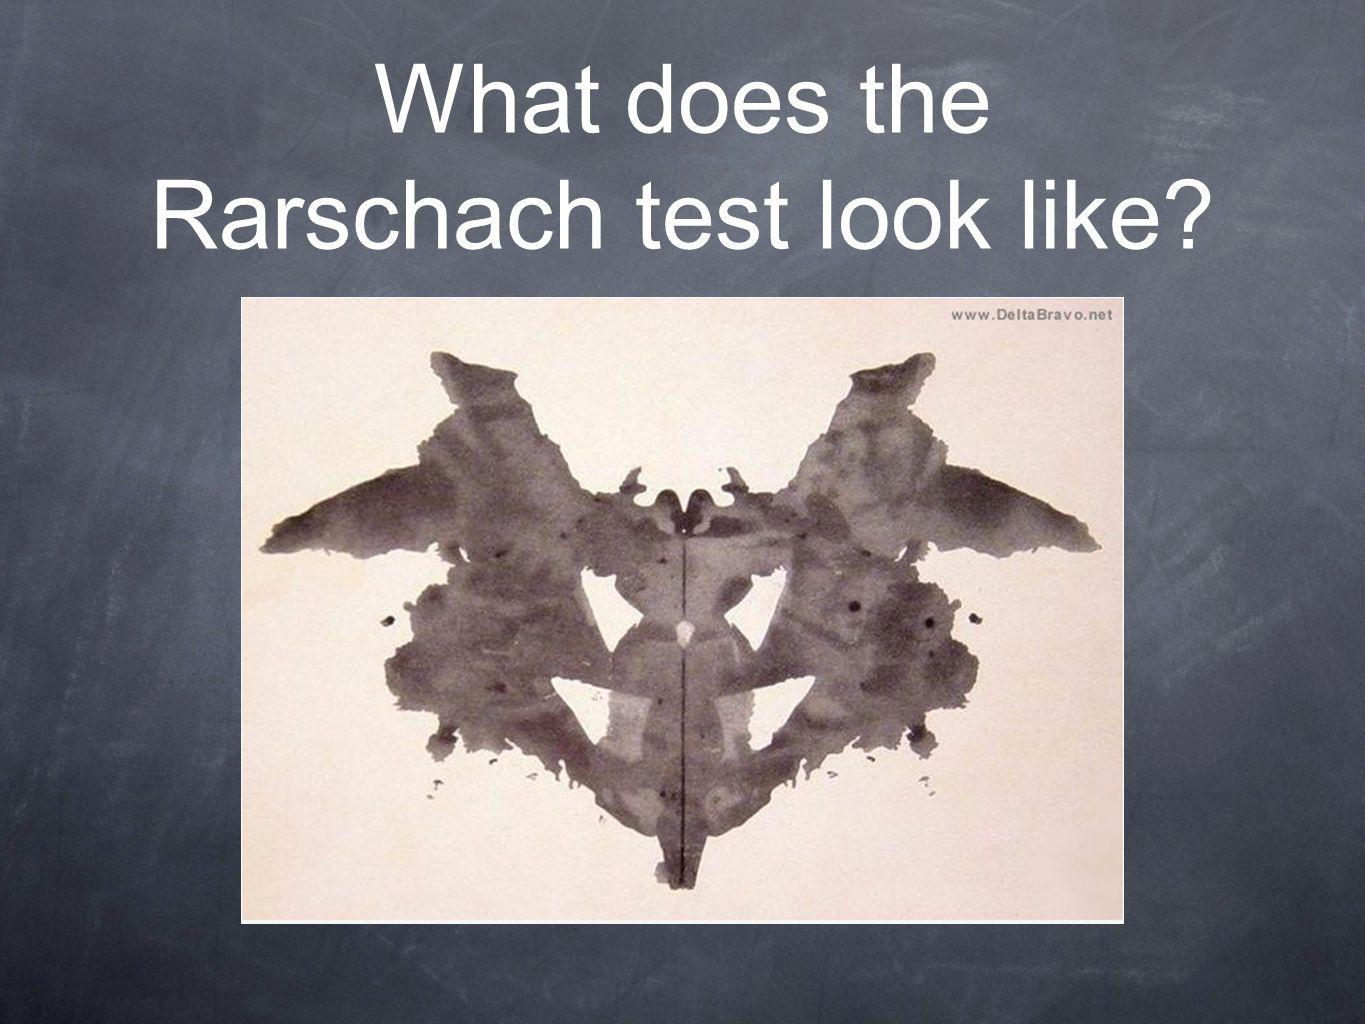 What does the Rarschach test look like